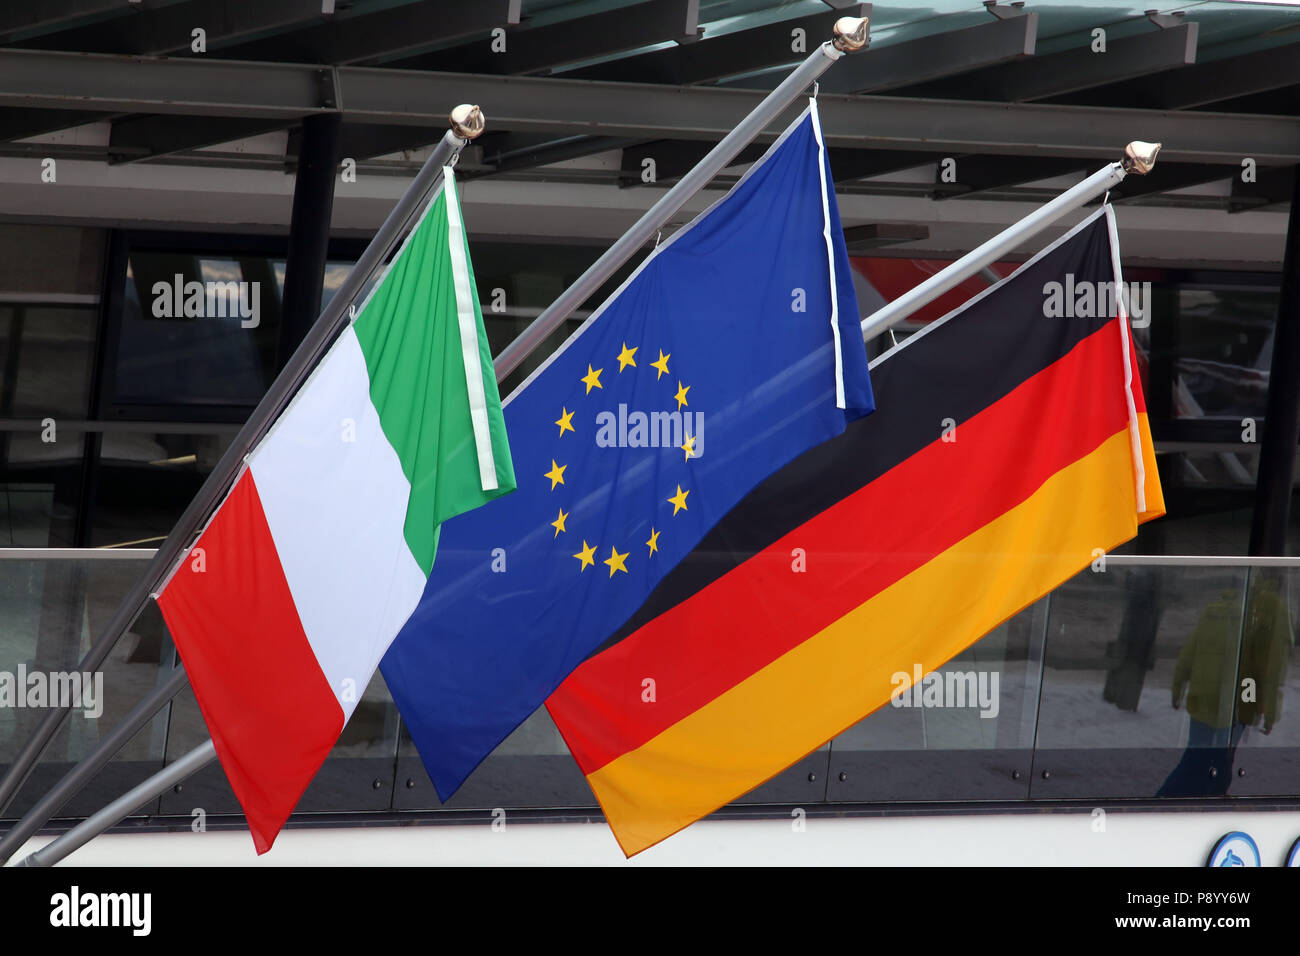 Reischach, Italy, national flag of Italy, flag of the European Union and national flag of the Federal Republic of Germany - Stock Image